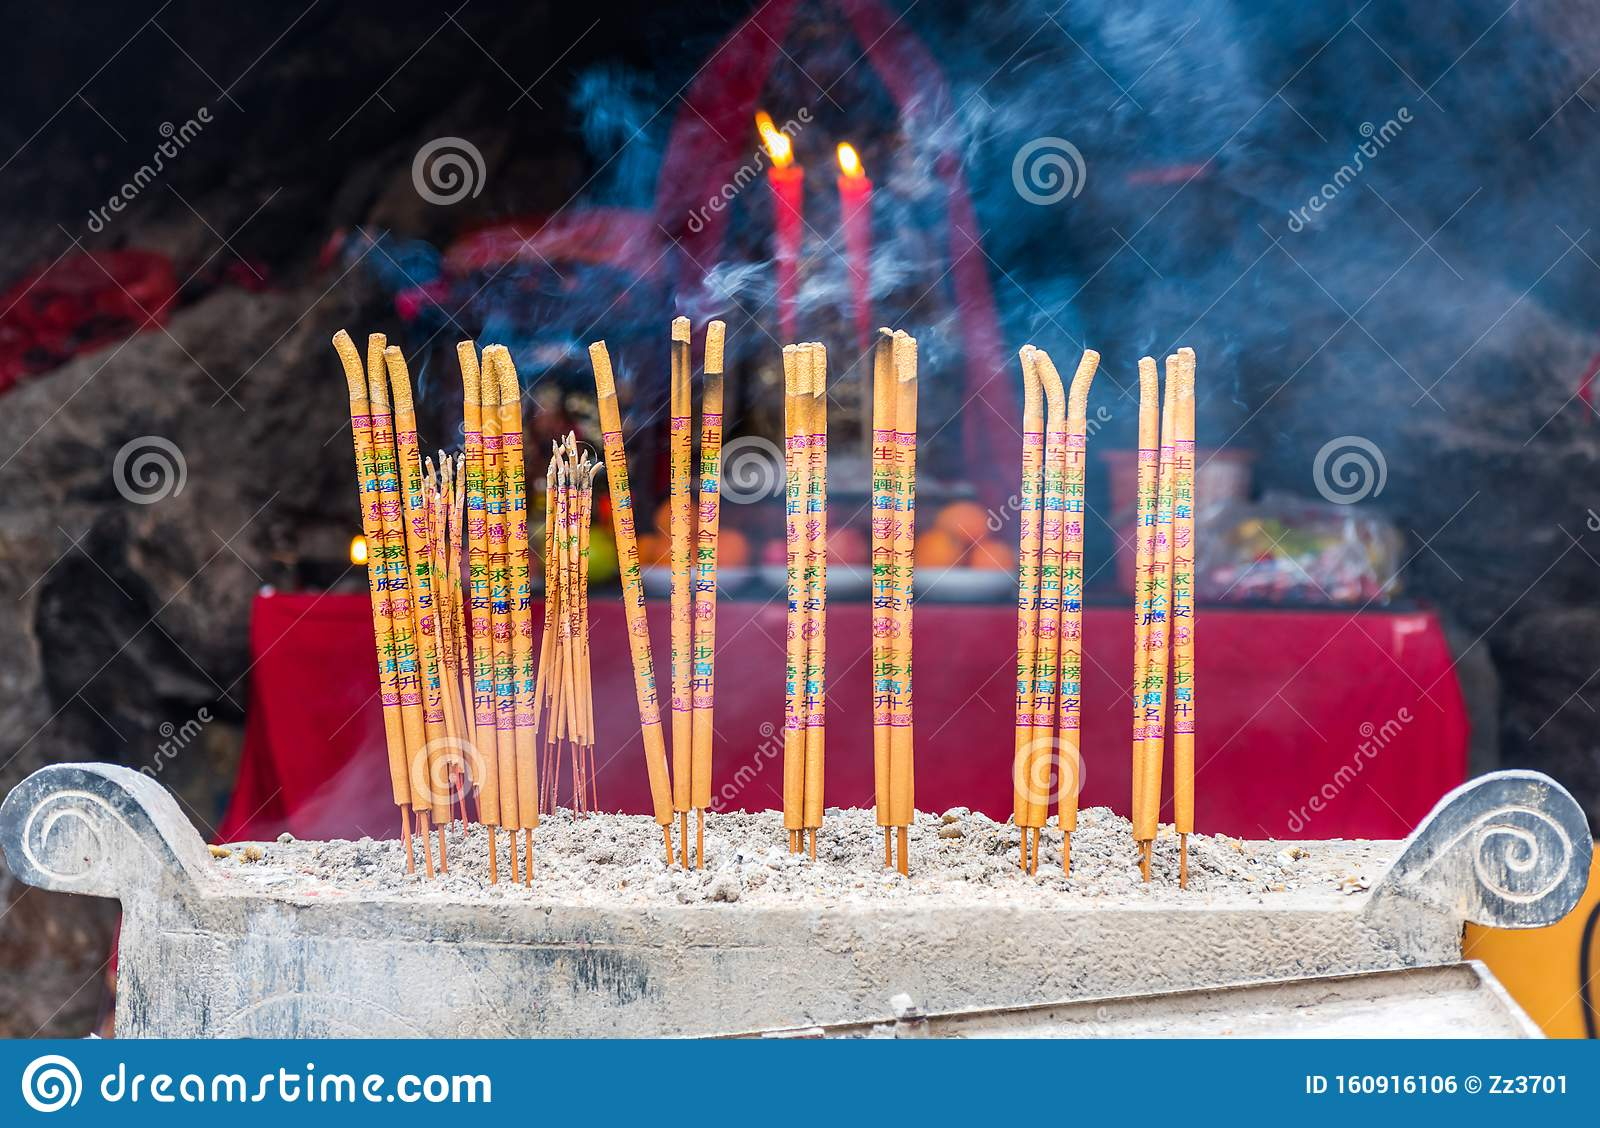 Burning Incense And Worship The Gods In The Buddhist Temple In Qingyan Ancient Town Guizhou Province China The Old Town Is A Editorial Photo Image Of Decoration Ancient 160916106